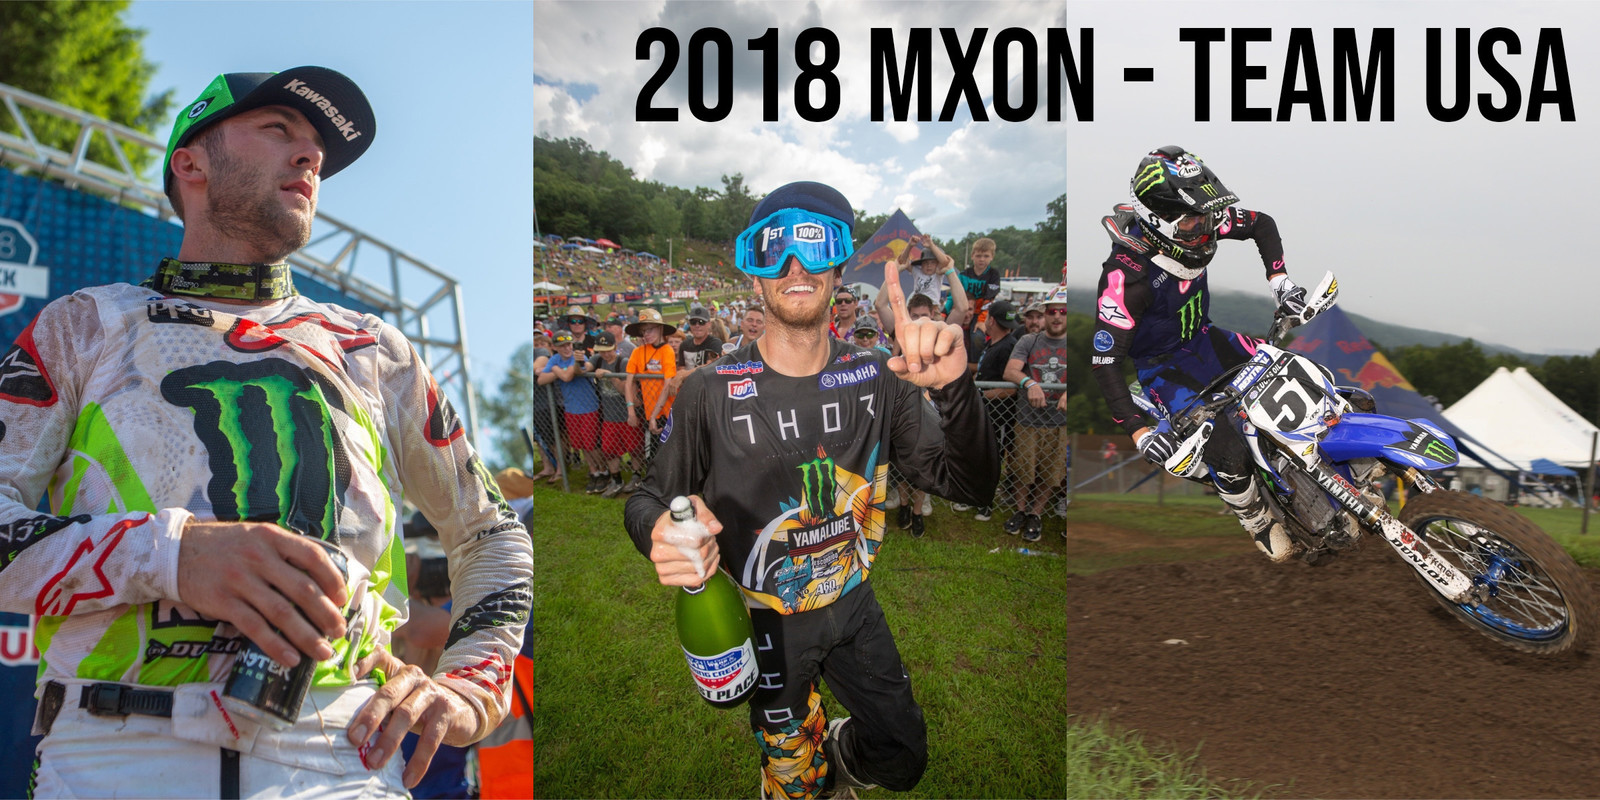 Eli Tomac, Aaron Plessinger, and Justin Barcia are Team USA for 2018